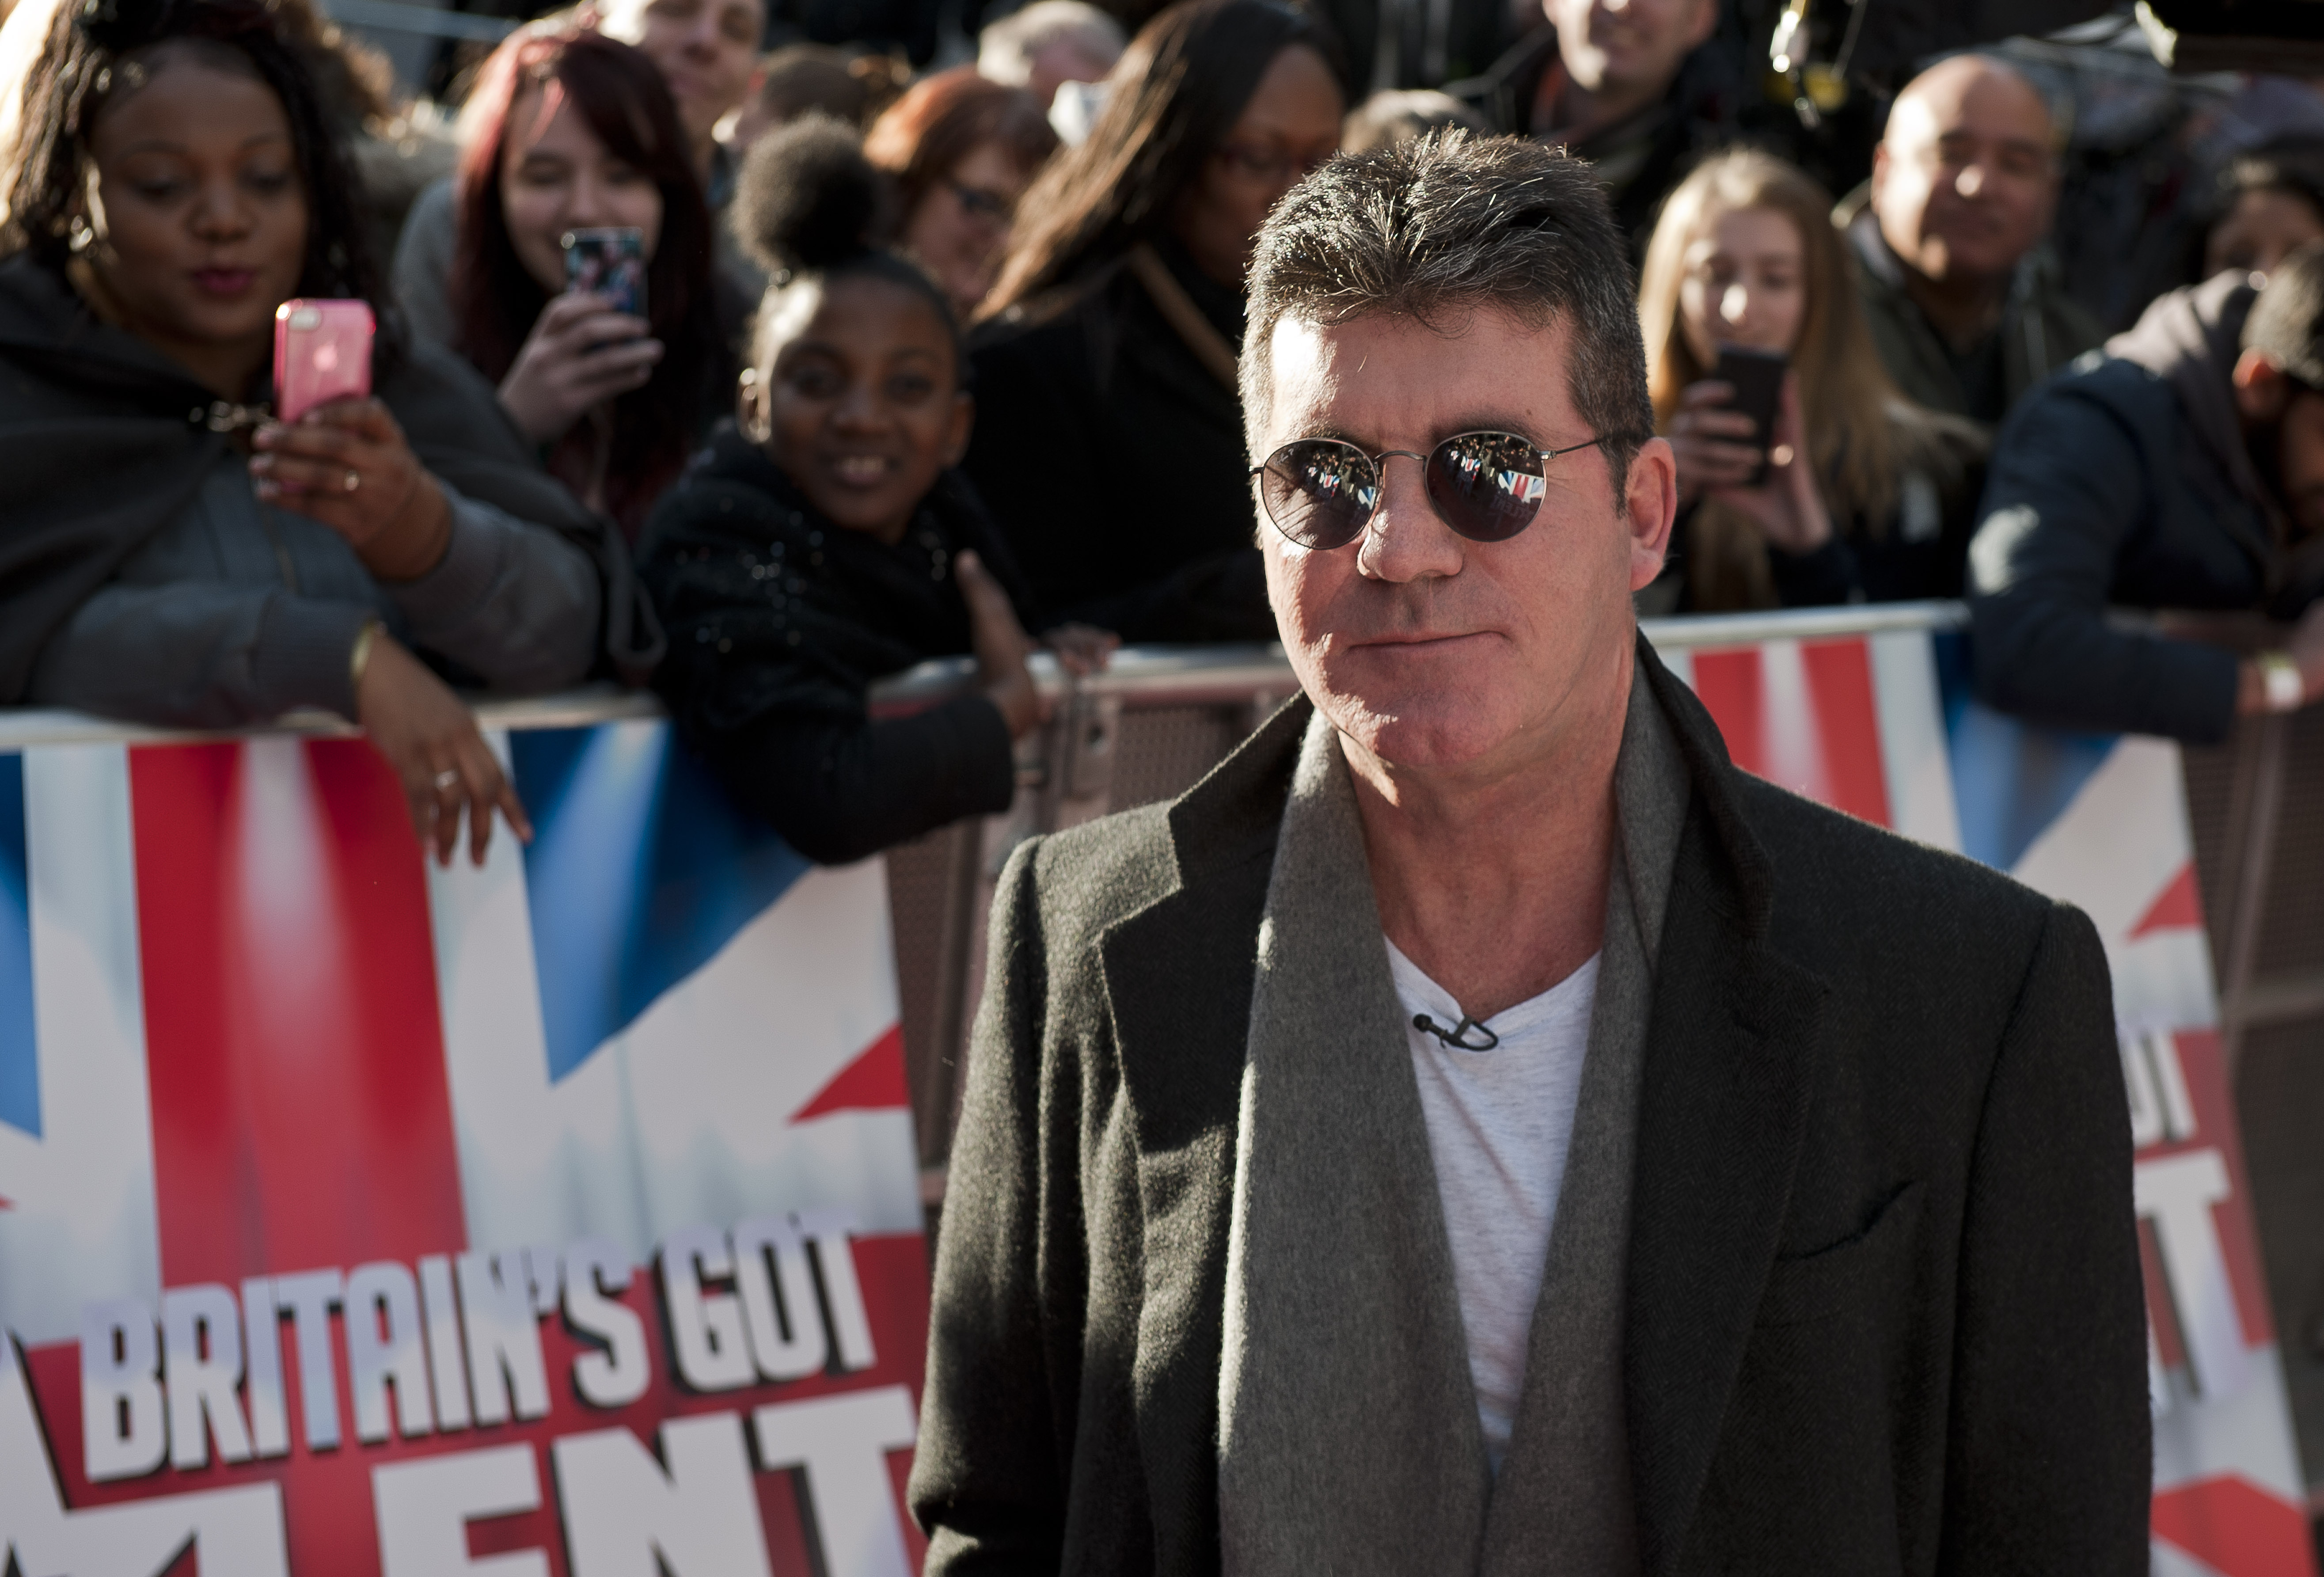 Britain's Got Talent judge Simon Cowell arrives for auditions at the Hammersmith Apollo in west London.   (Photo by Will Oliver/PA Images via Getty Images)